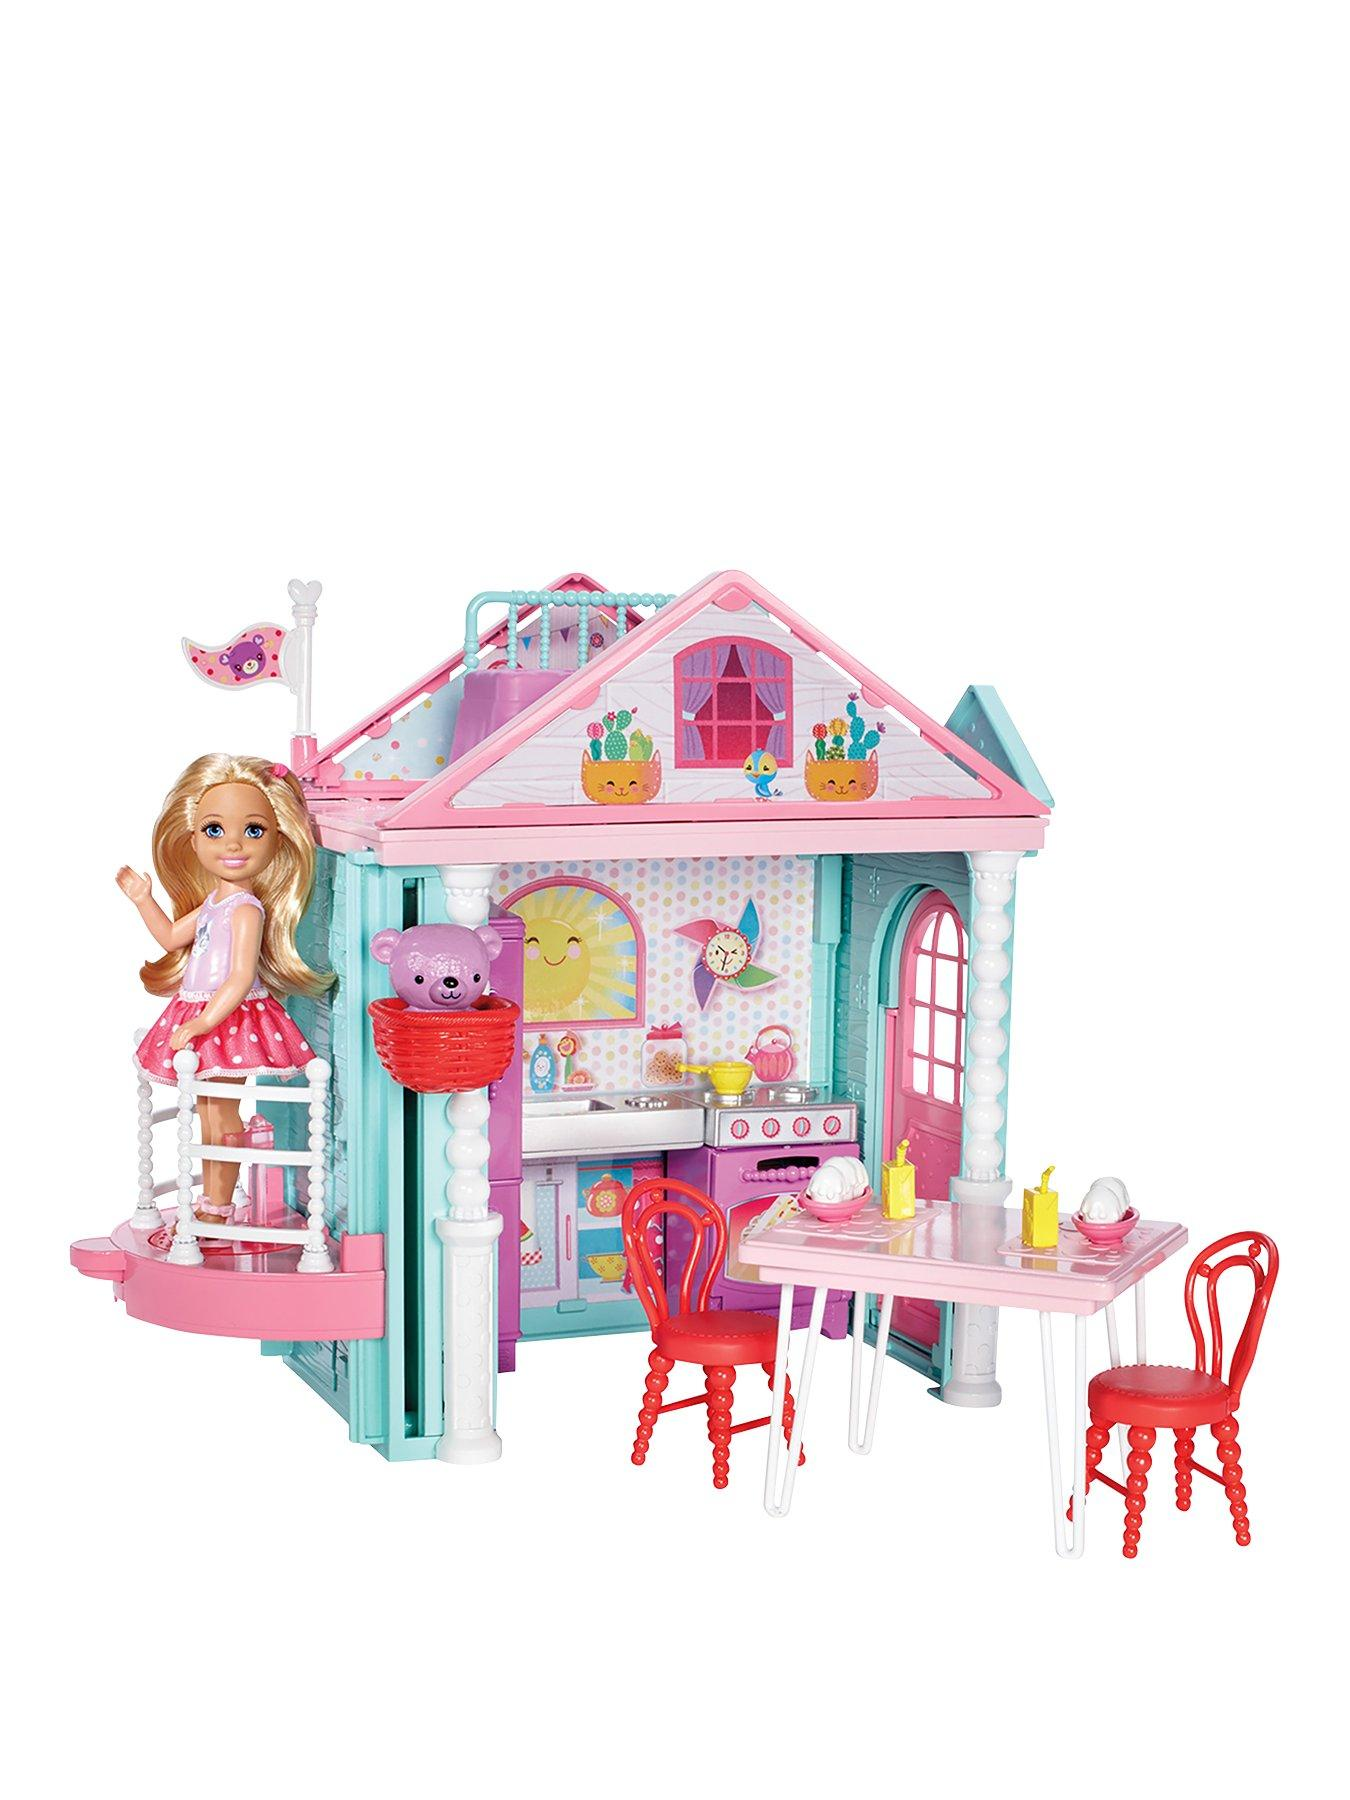 Compare prices for Barbie Club Chelsea Playhouse